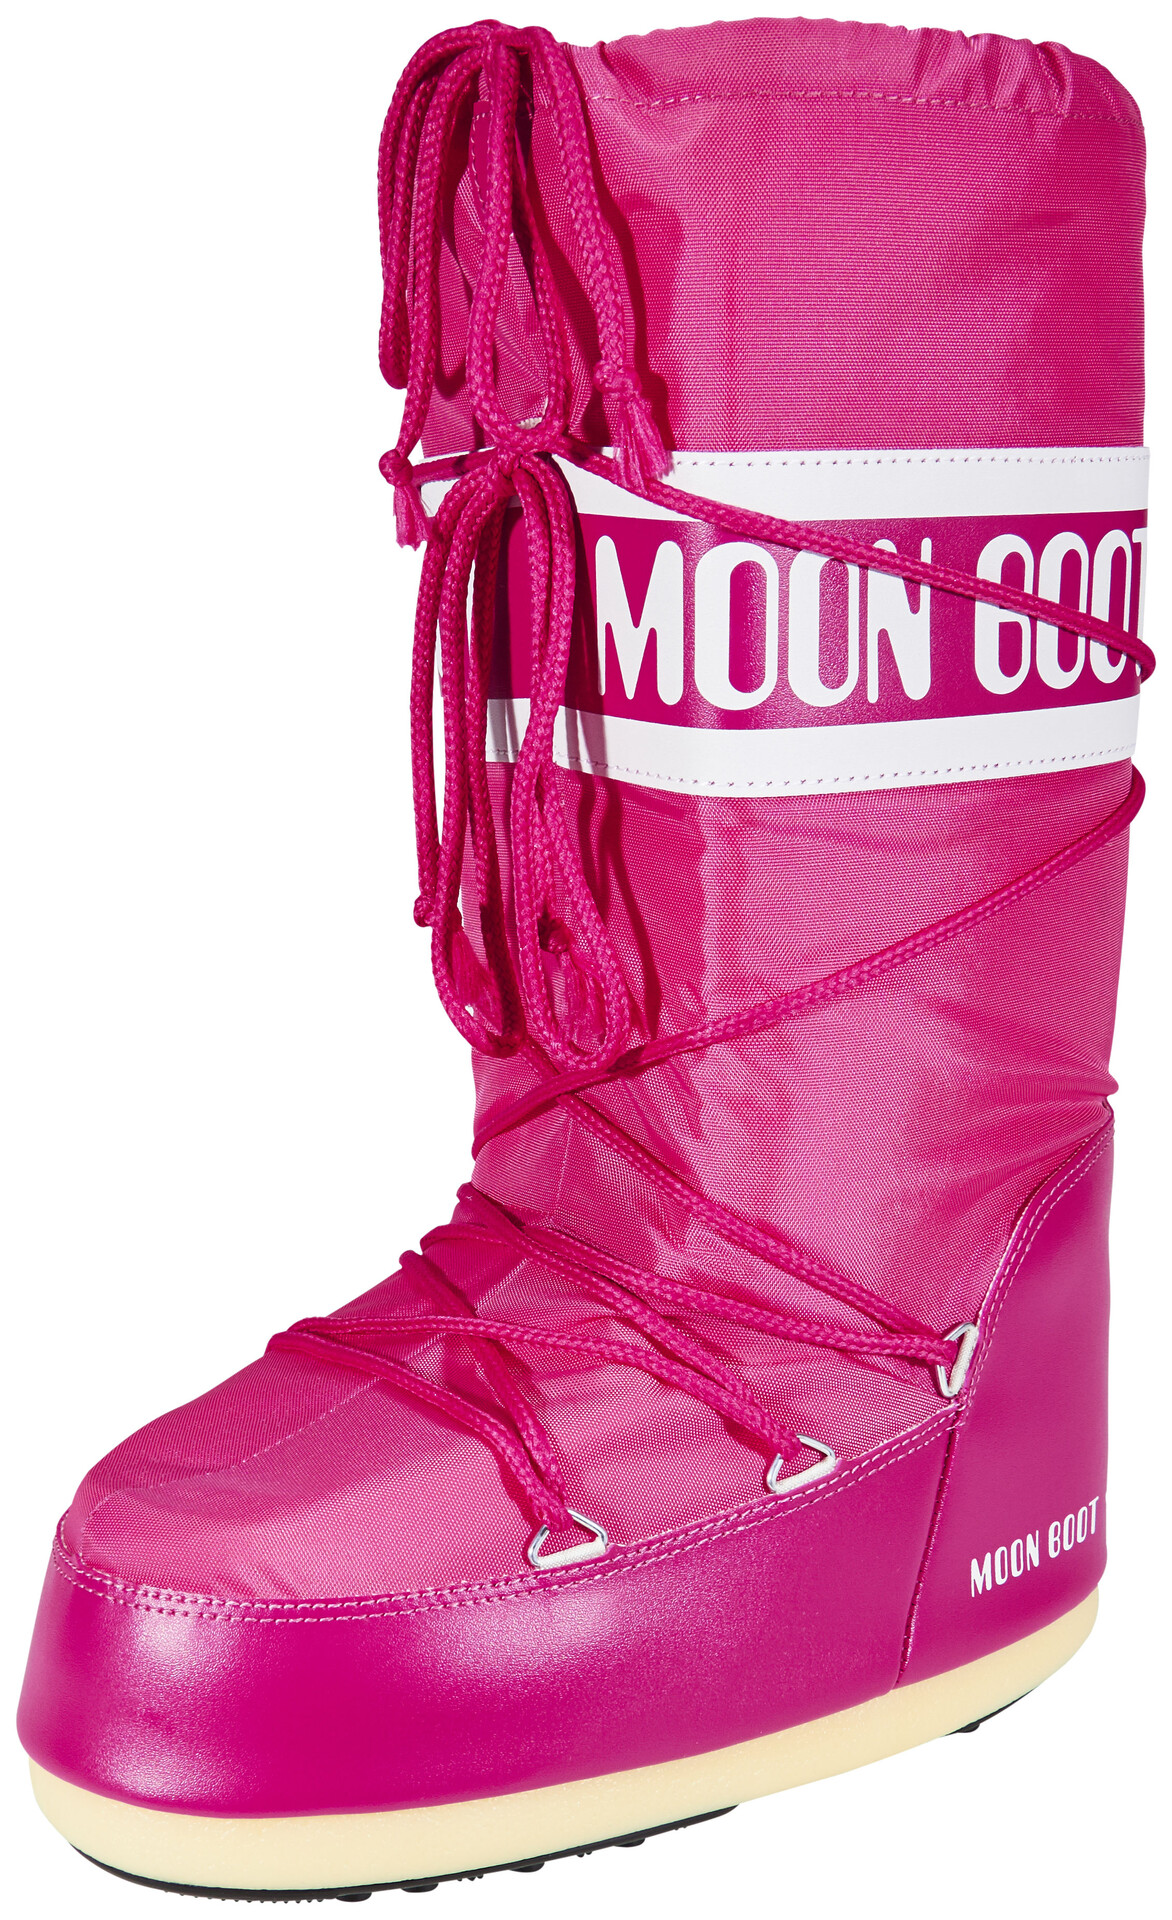 Moon Boot Nylon Boots Pink At Addnaturecouk